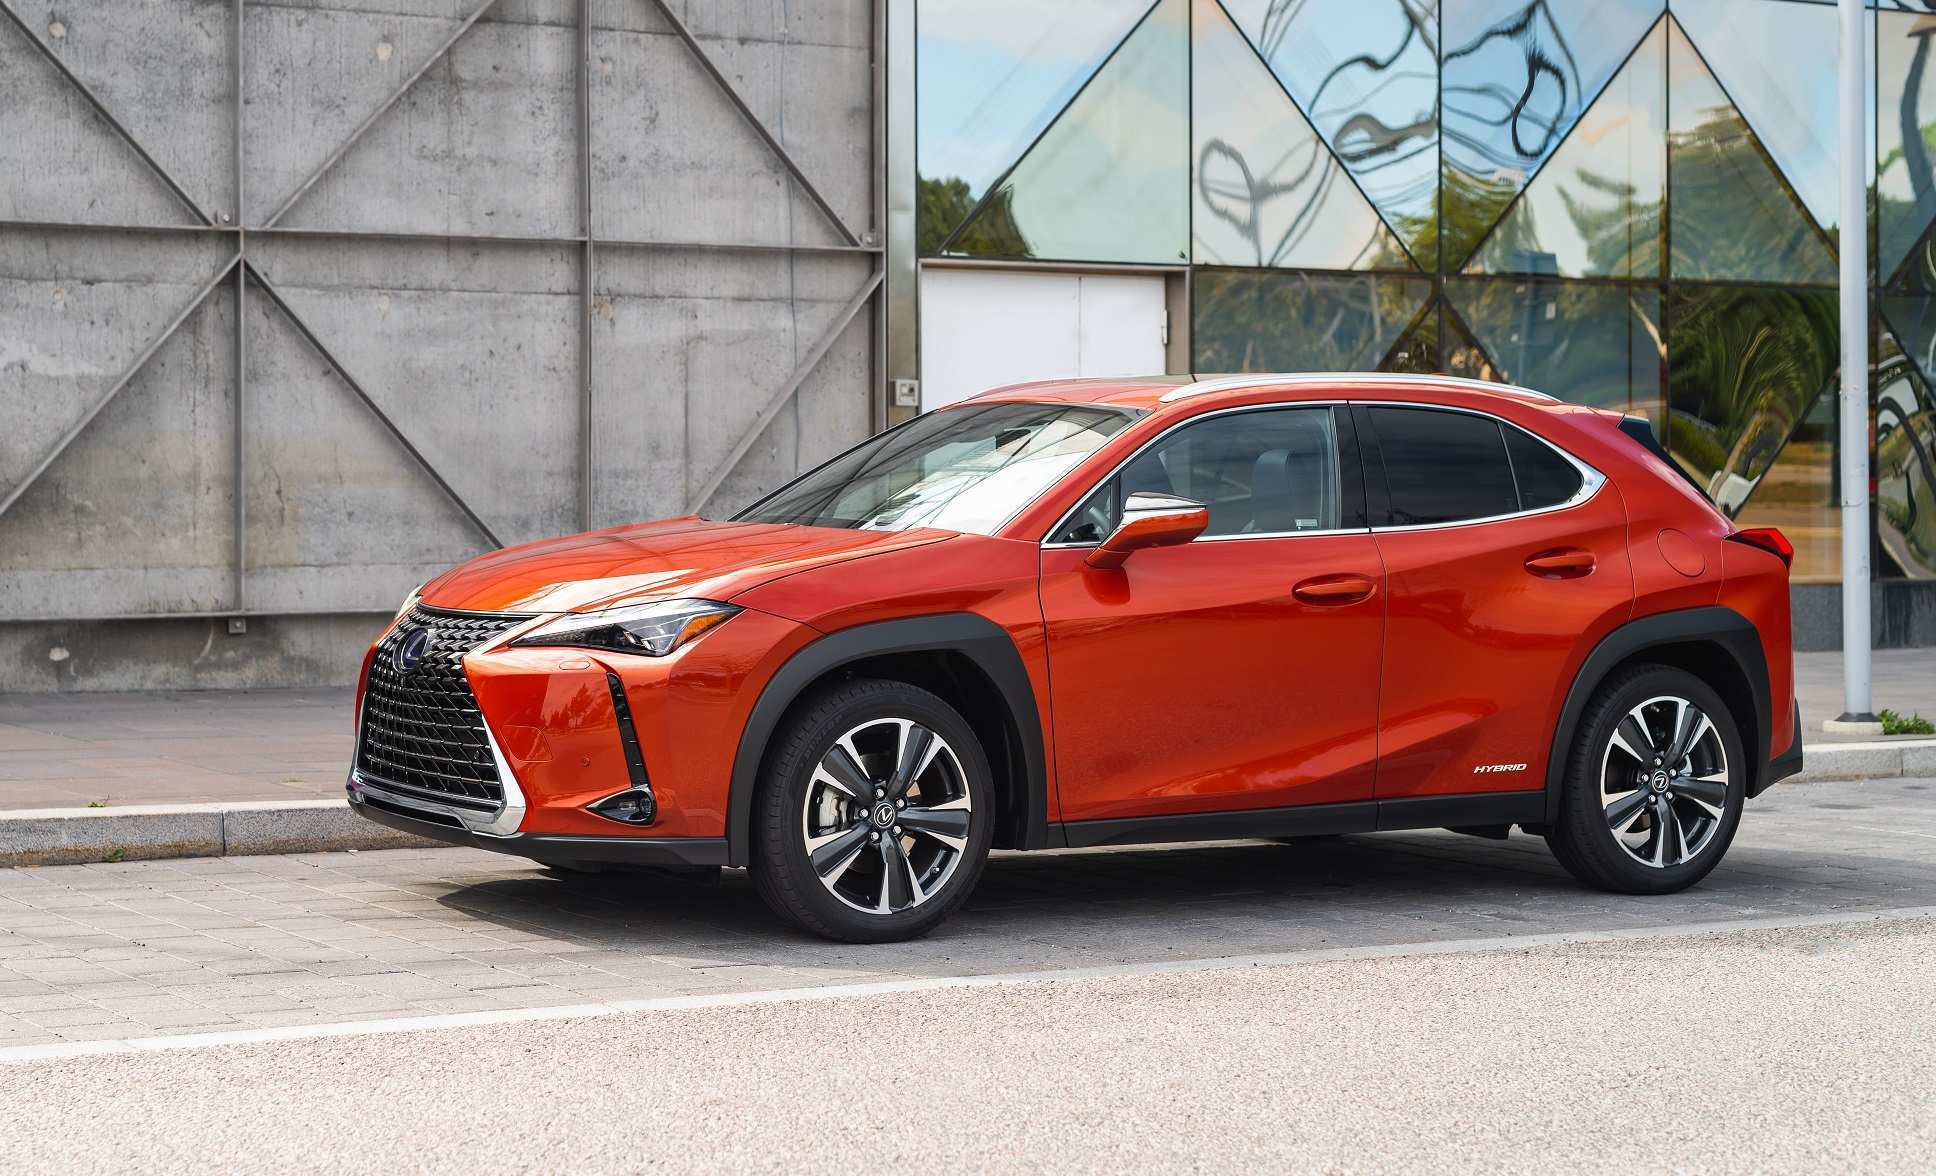 51 Great 2019 Lexus Ux Canada Price and Review by 2019 Lexus Ux Canada